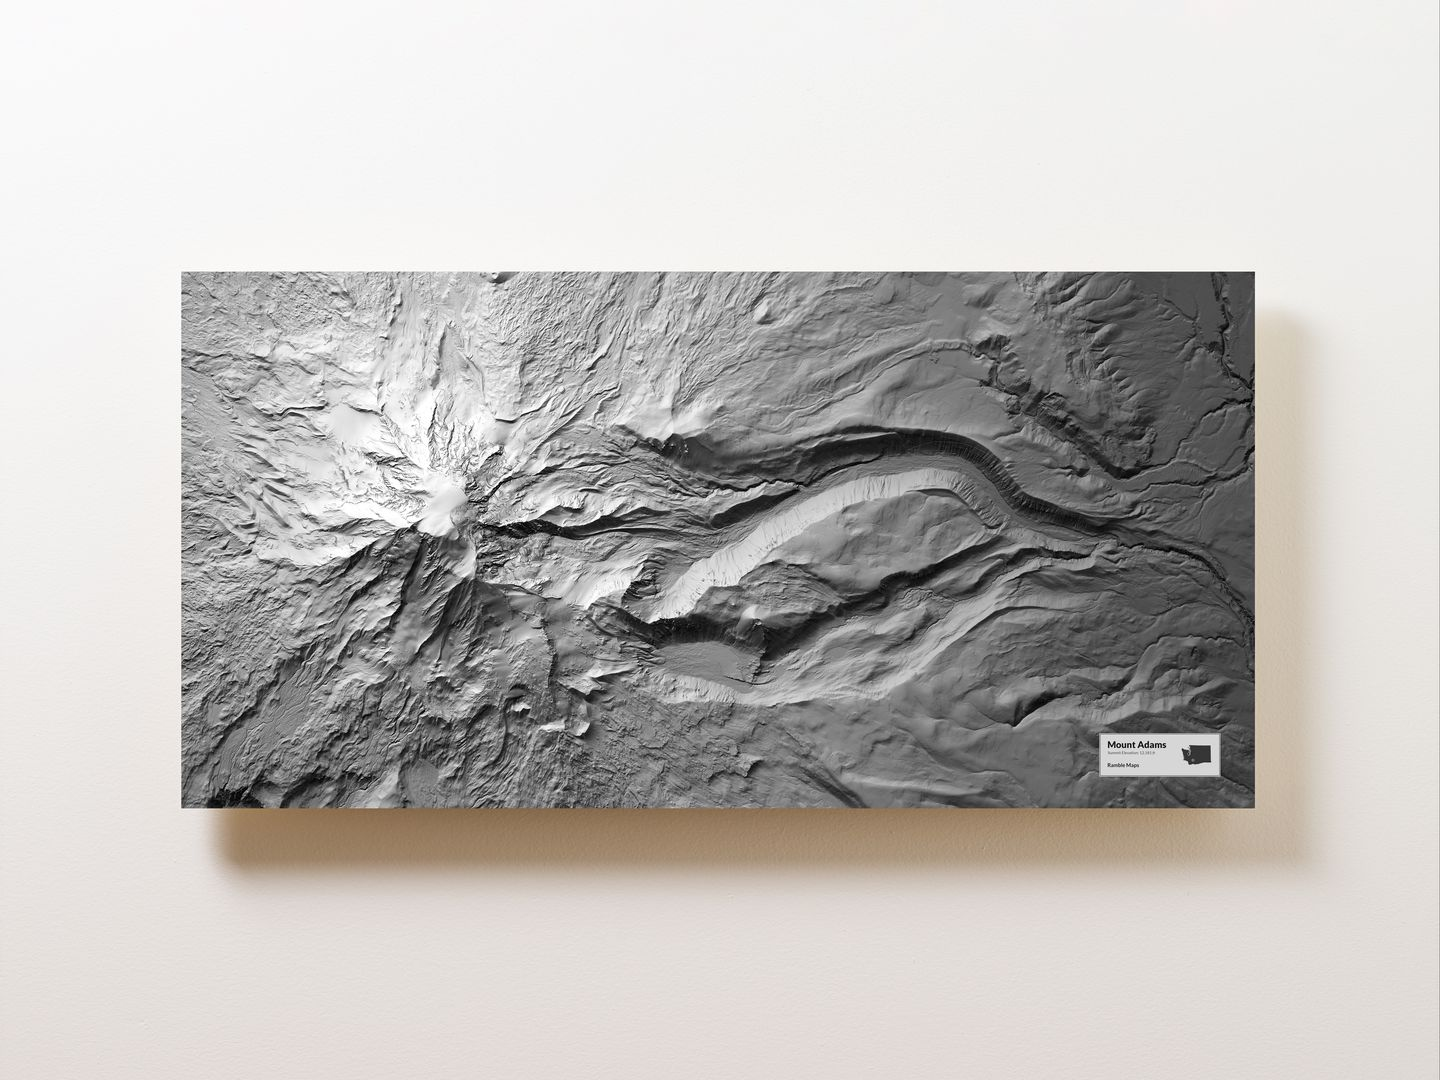 Mount Adams Wall Map